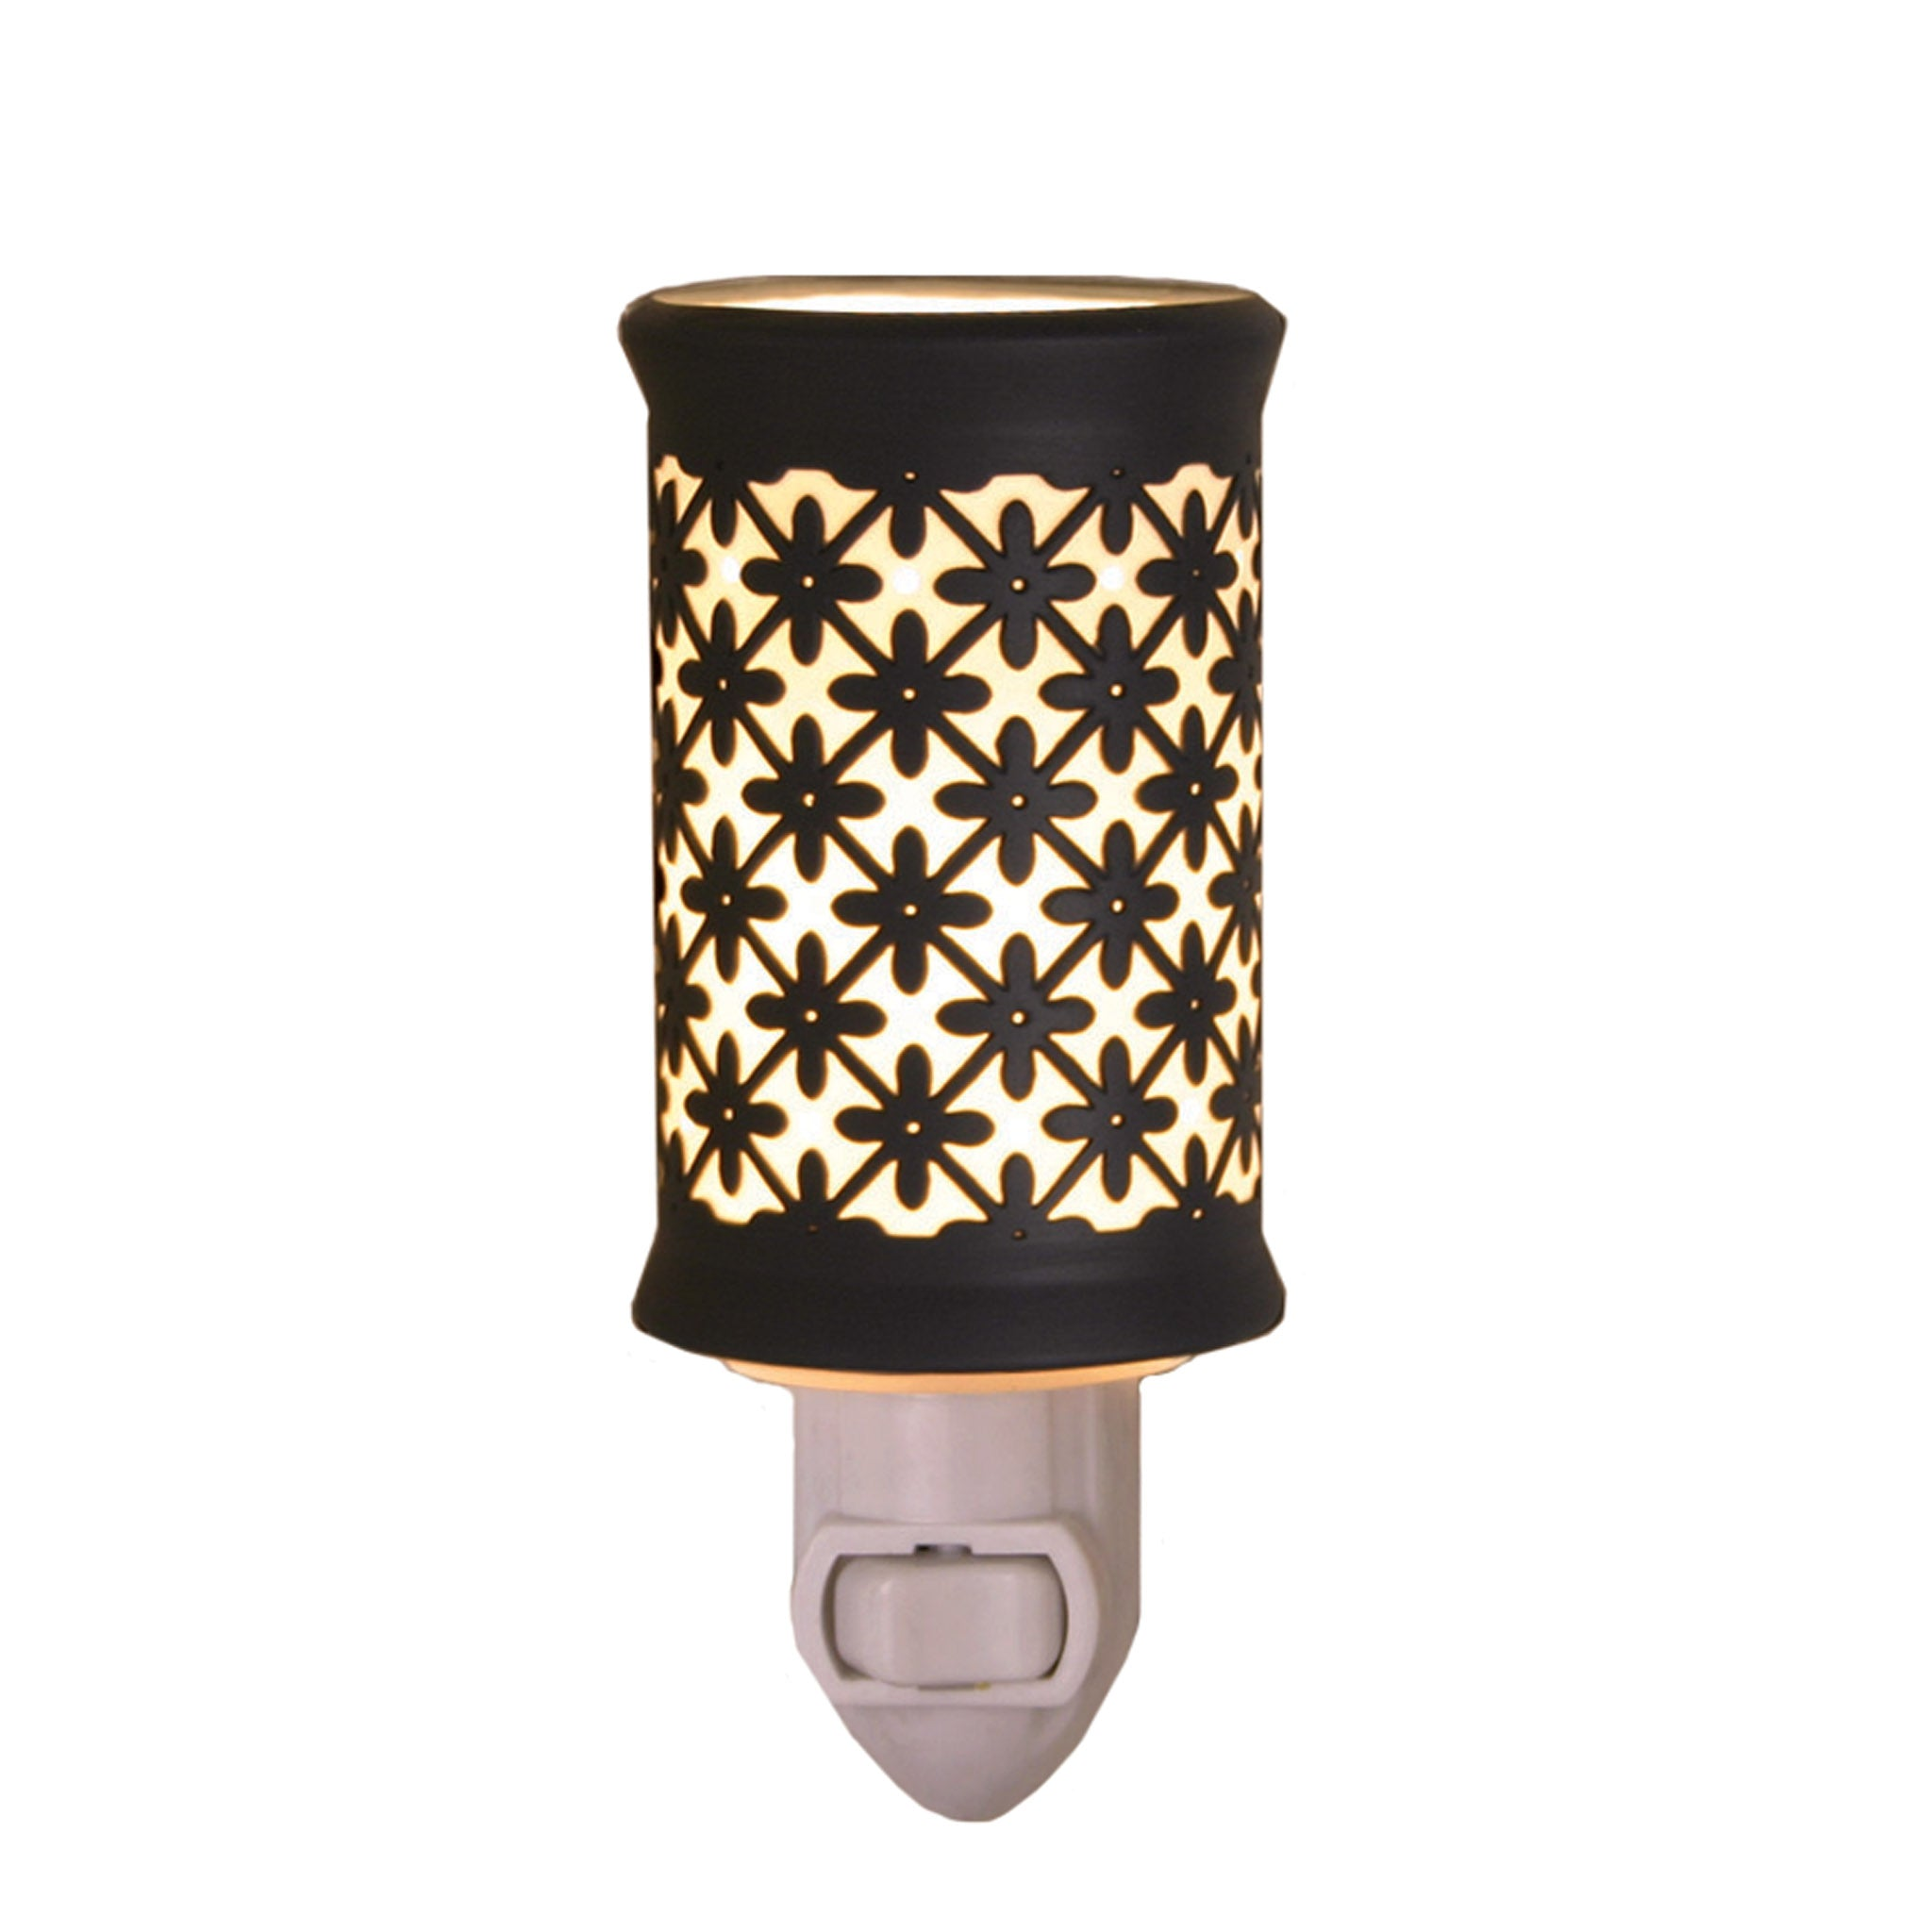 Marrakesh Silhouette Night Light